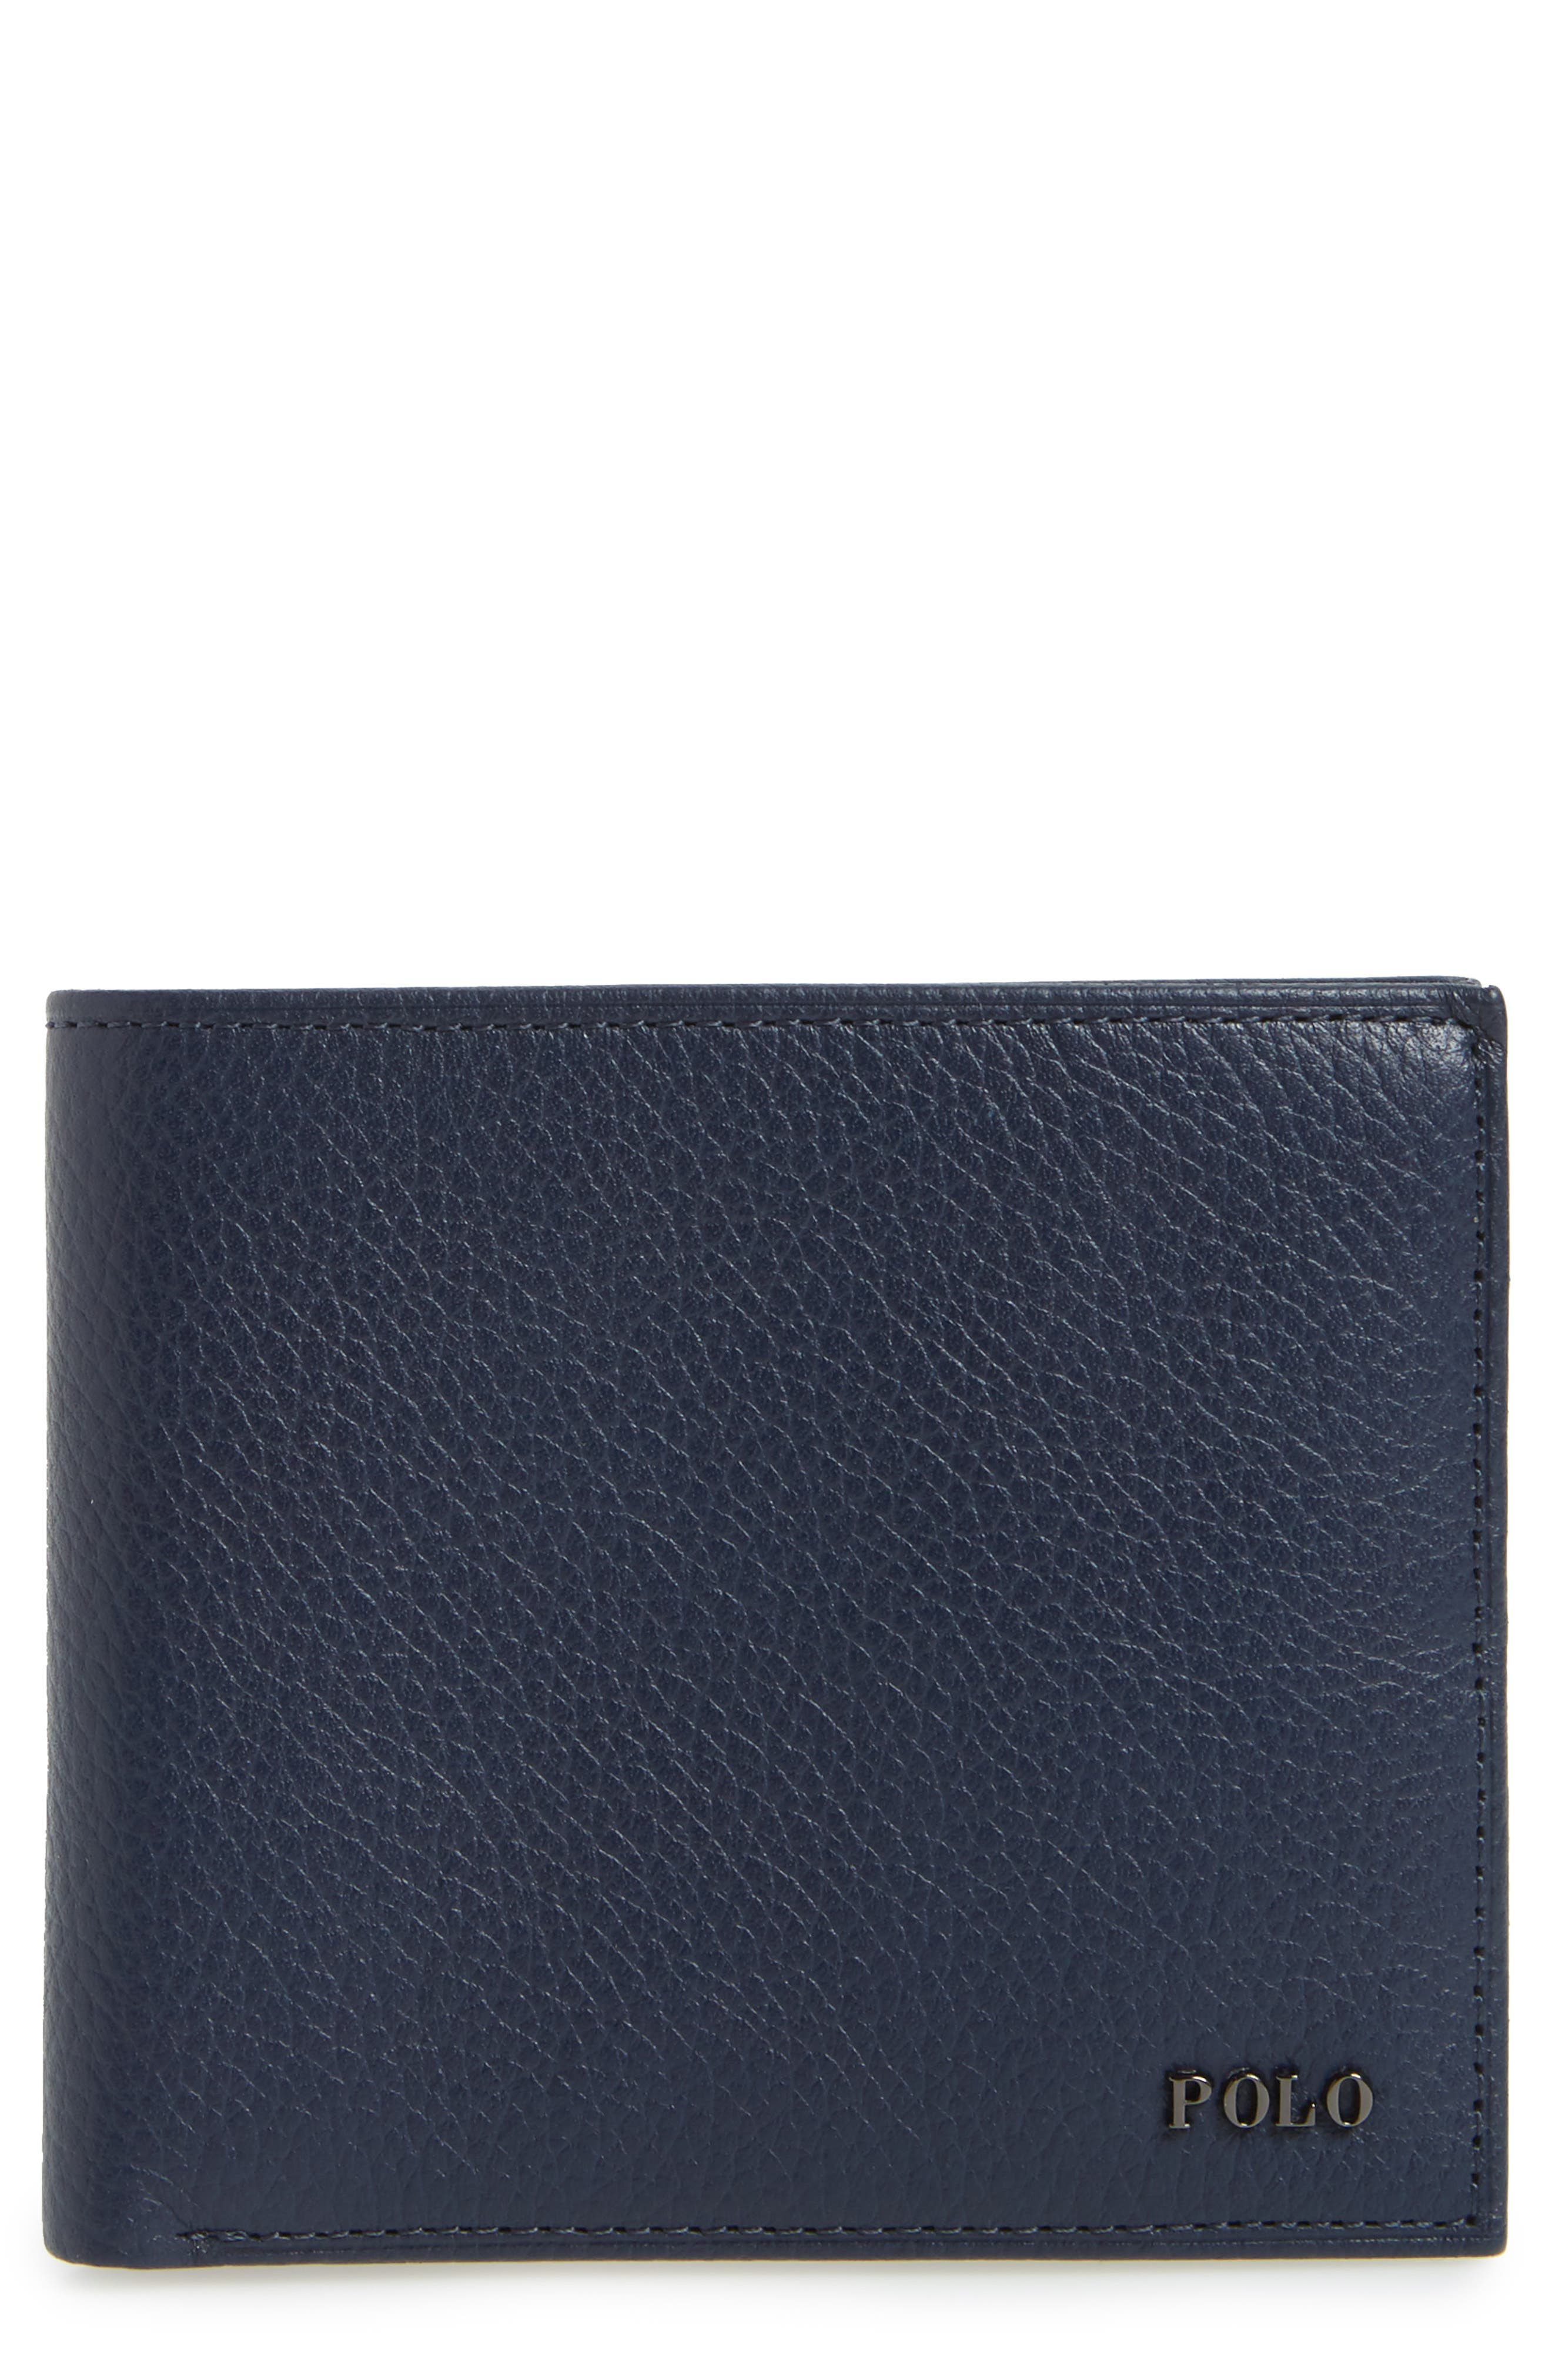 Leather Wallet,                             Main thumbnail 1, color,                             400